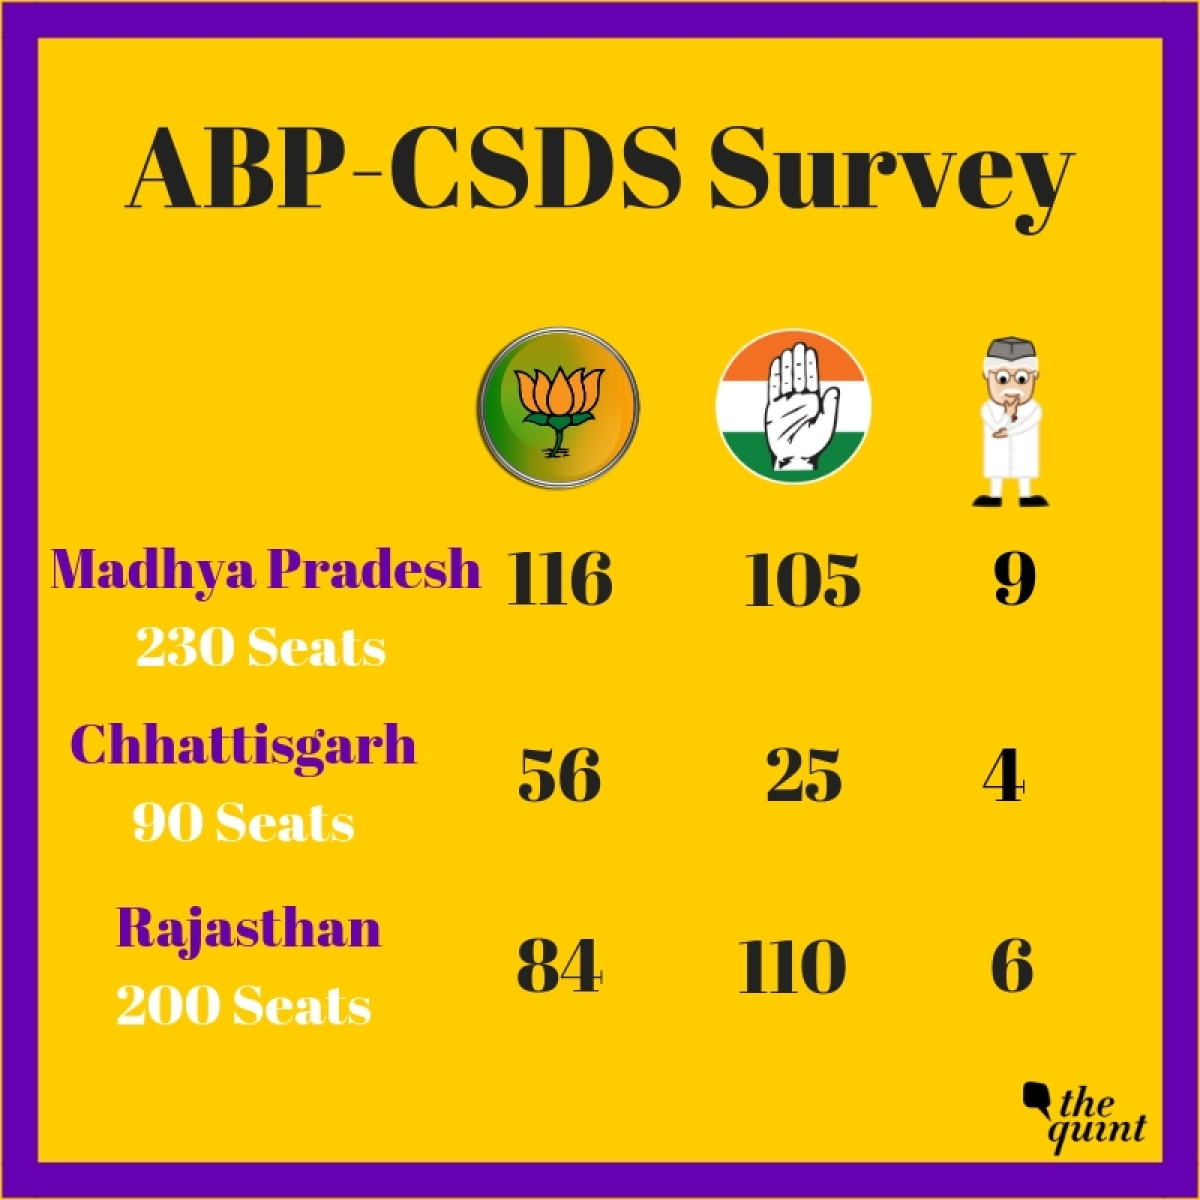 ABP-CSDS Survey: BJP Likely To Form Government In Madhya